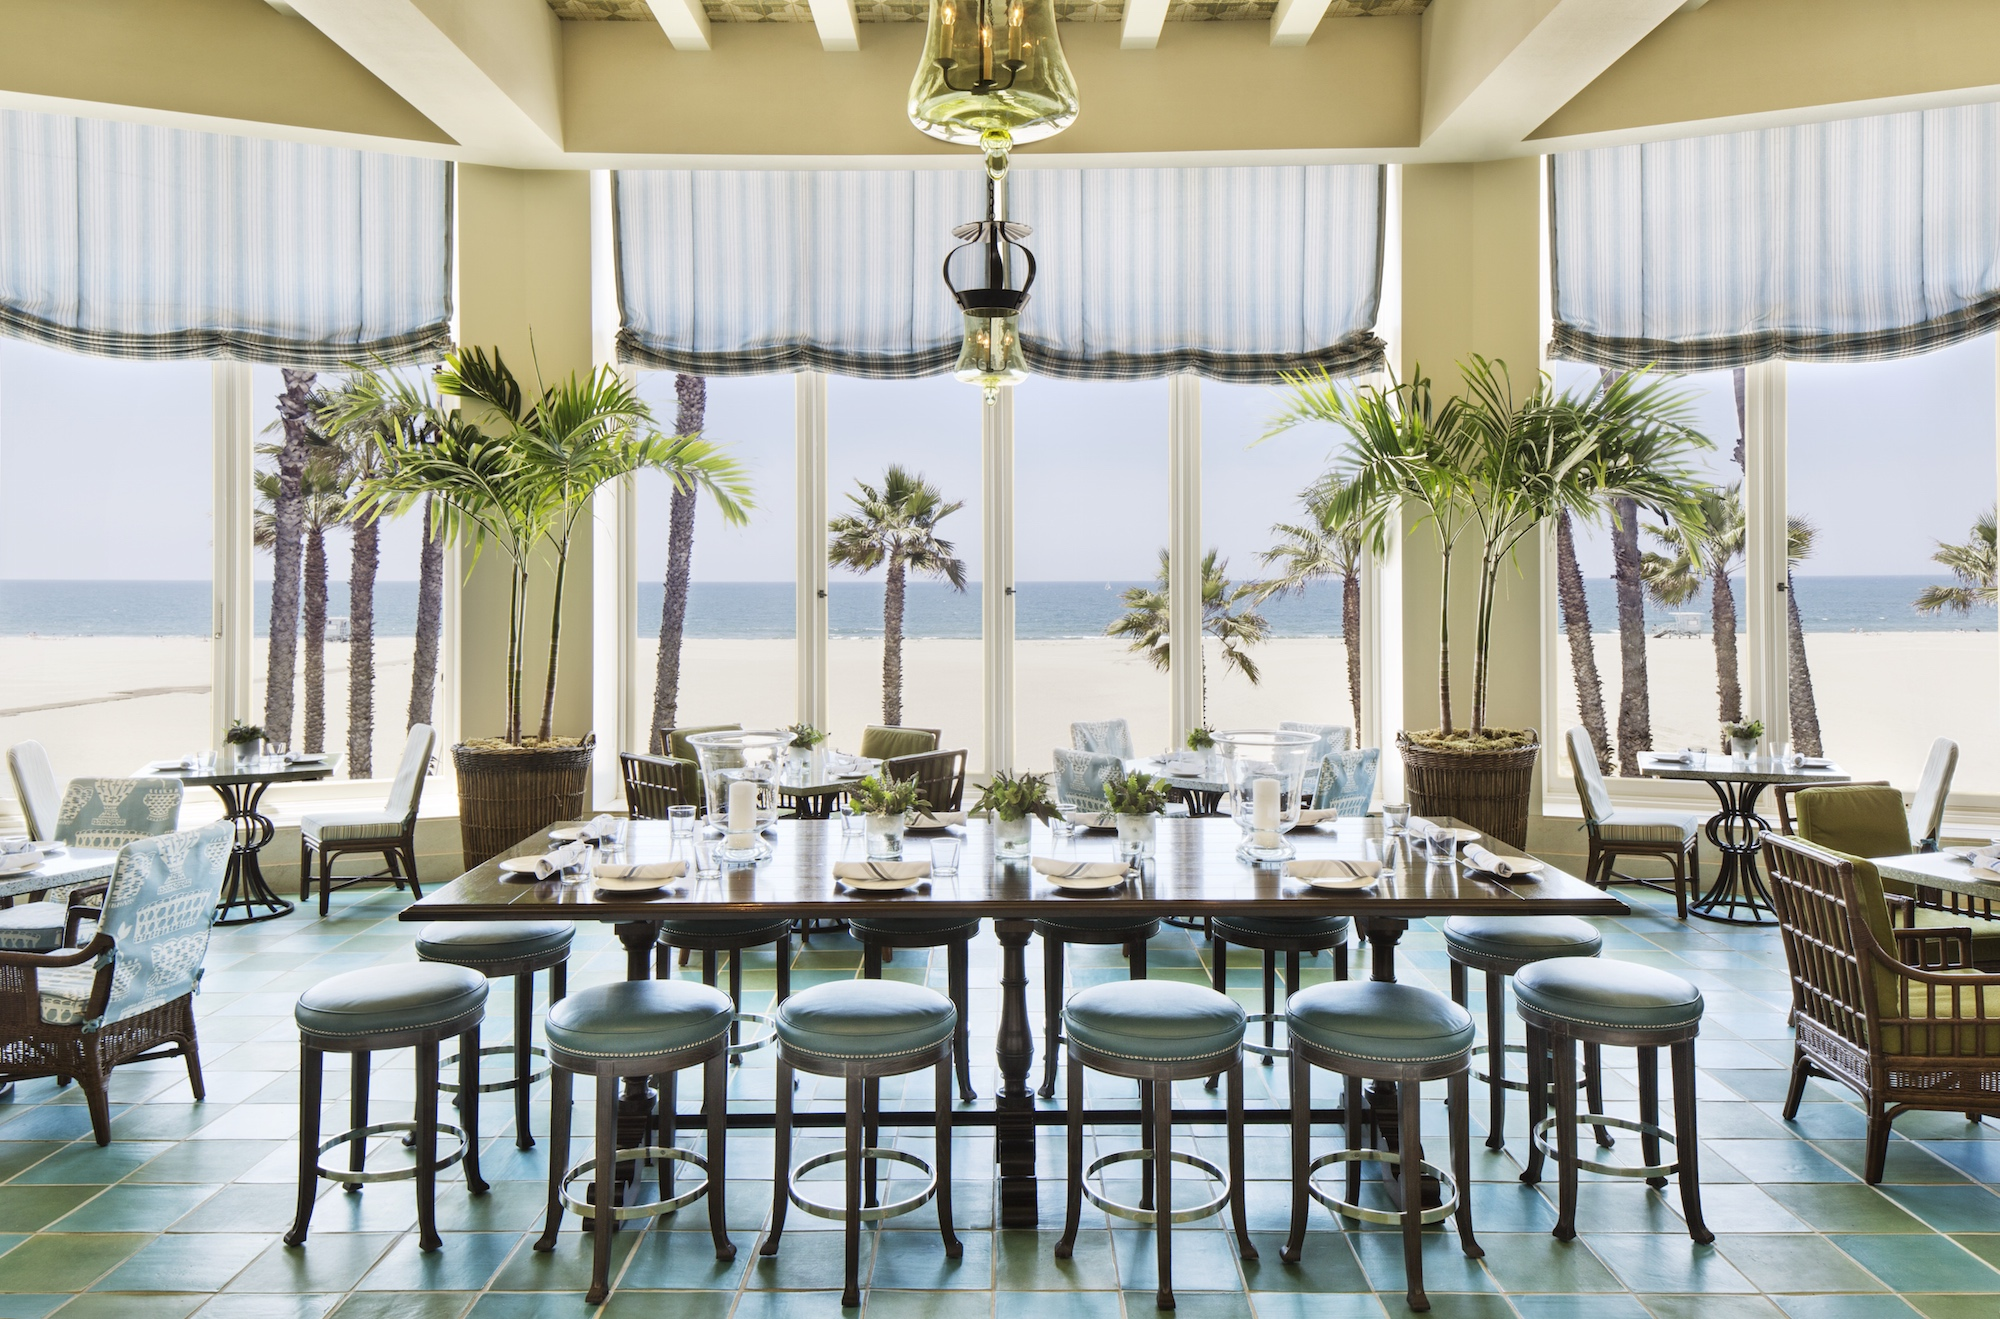 Santa Monica Dining   Hotel Restaurants In Santa Monica | Hotel Casa Del Mar